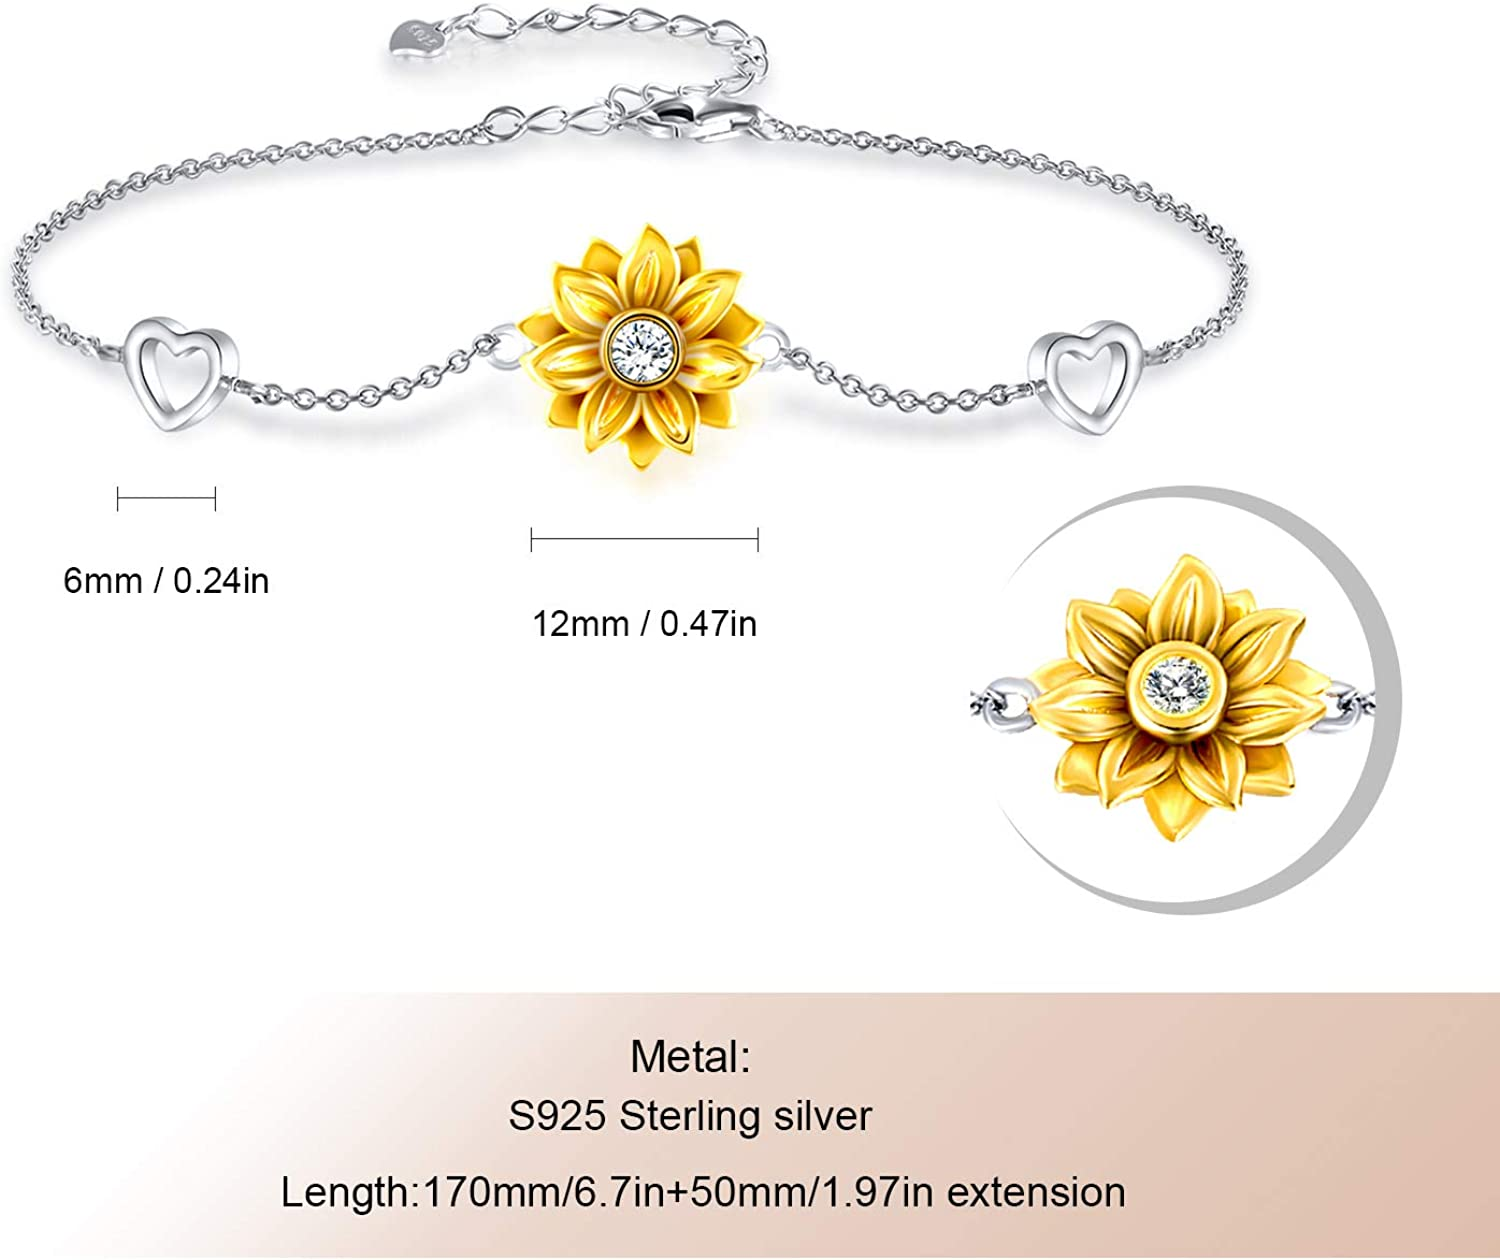 925 Sterling Silver Bracelet for Women Adjustable Sunflower Heart Christmas Charm Bracelet for Women Girlfriend Love Jewelry Gifts for Valentines Day Birthday